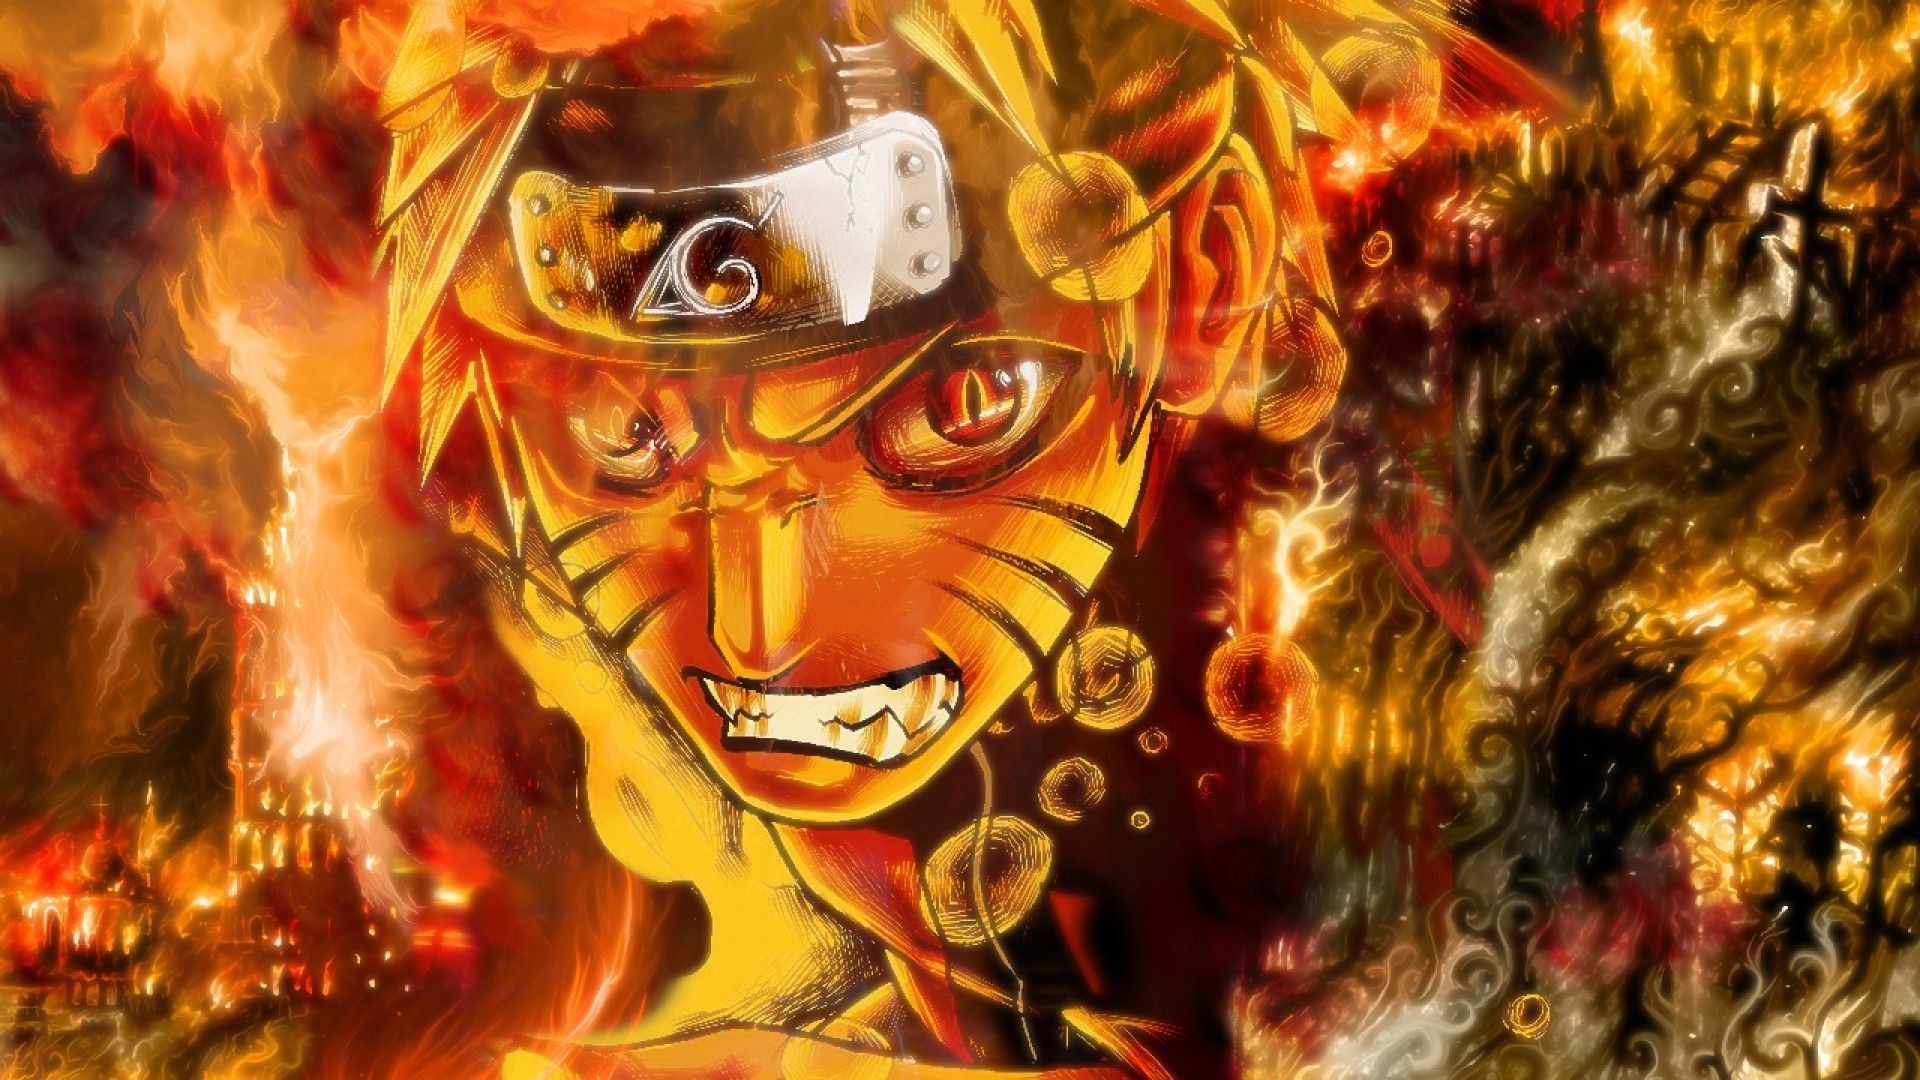 Naruto u2013 FREE Anime Live Wallpaper Android Game Download | Epic Car  Wallpapers | Pinterest | Free anime, Wallpapers android and Live wallpapers